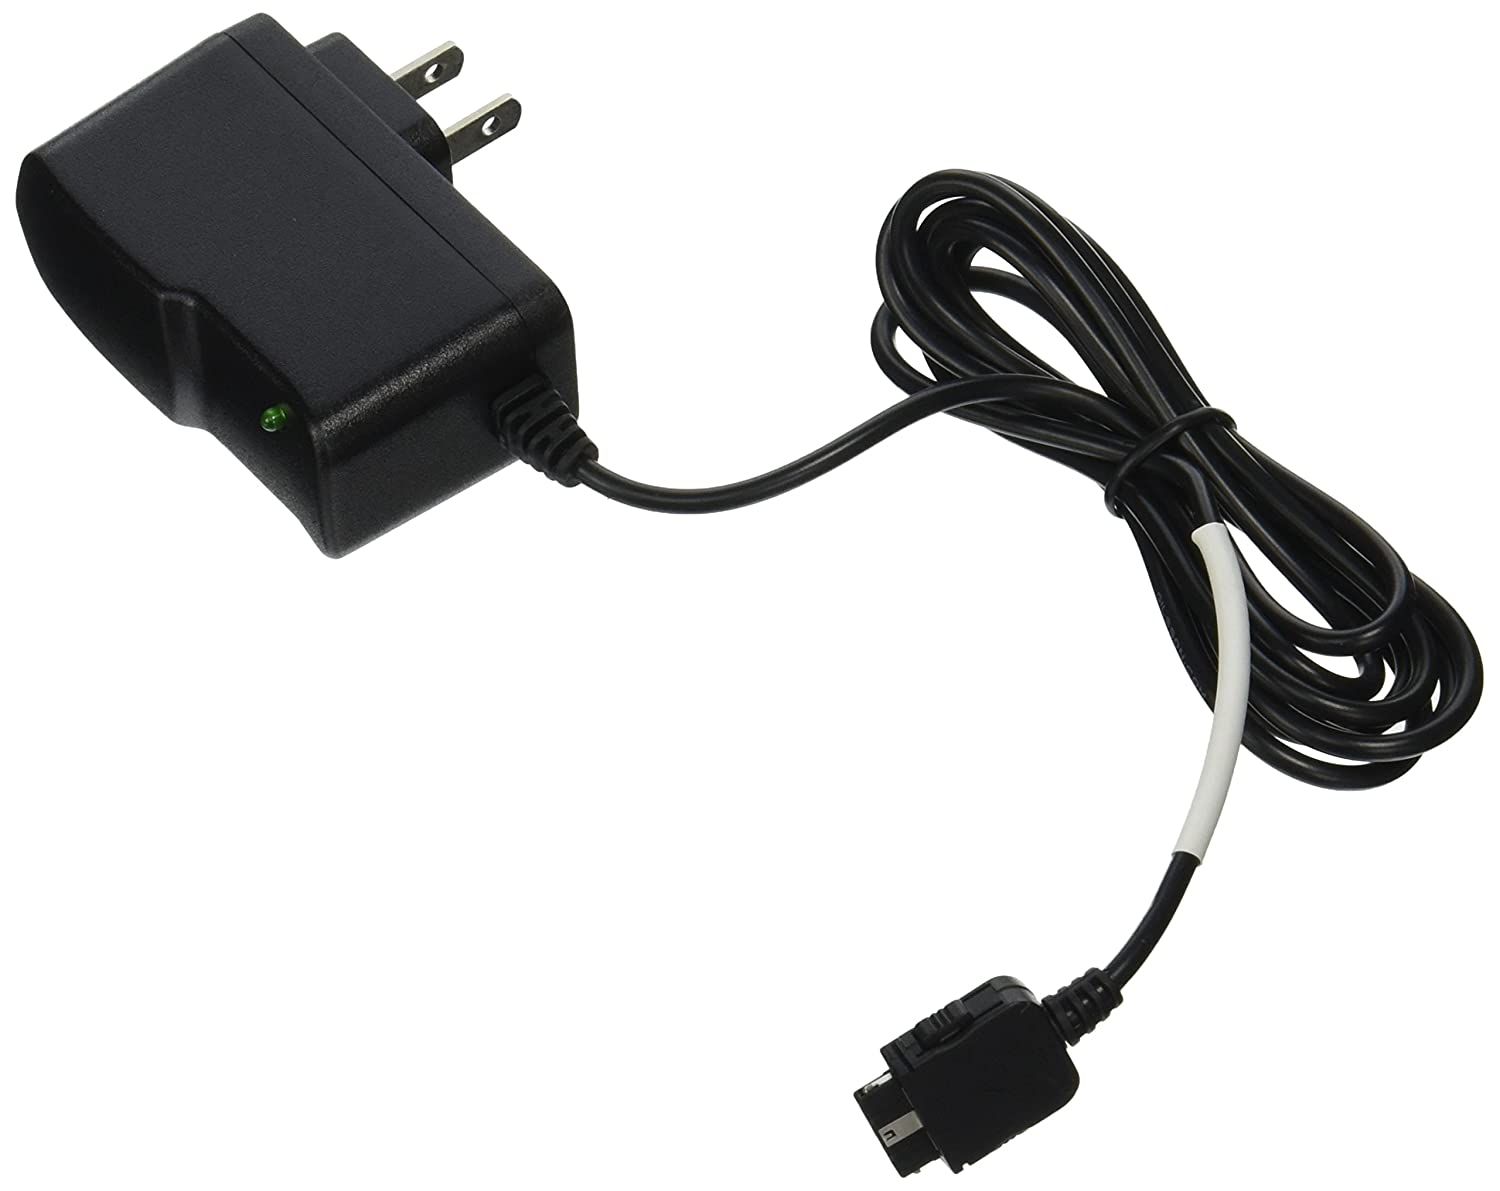 GARMIN NUVI 650 660 670 680 750 760 850 AC WALL CHARGER